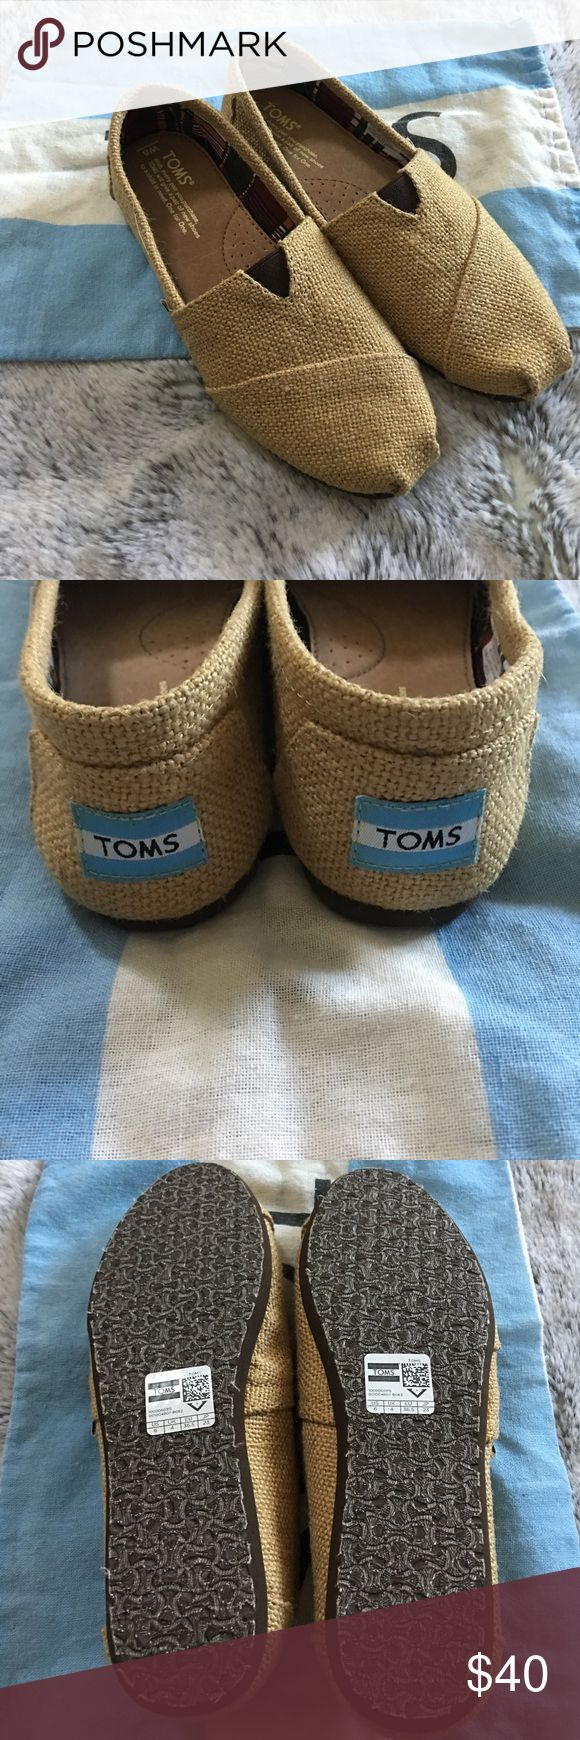 Natural Burlap TOMS New! Natural Burlap TOMS. Size 6. Comes with TOMS bag. No box. TOMS Shoes Flats & Loafers